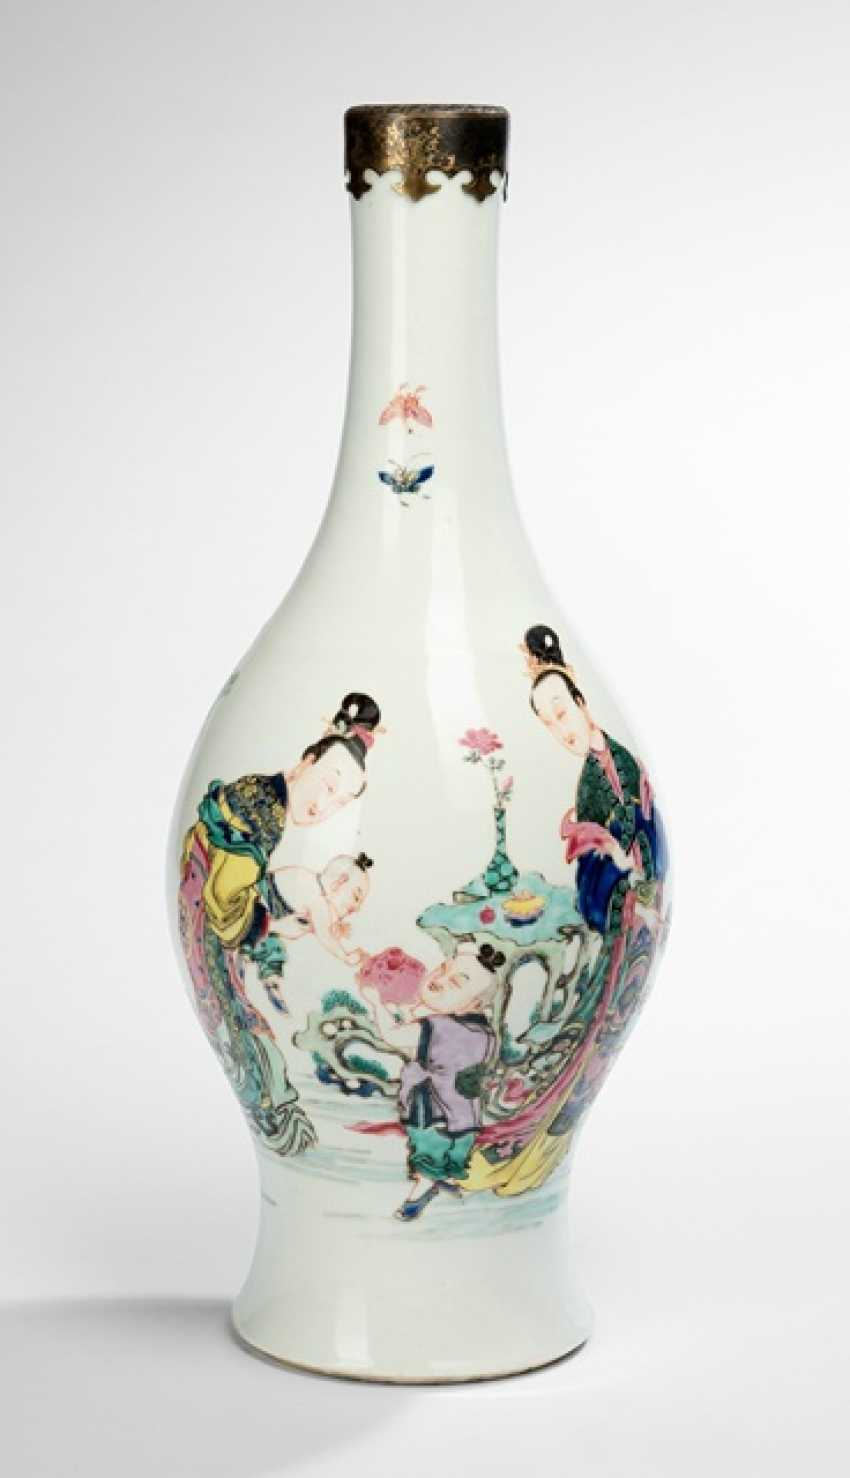 Great and rare polychrome-decorated bottle vase made of porcelain with ladies and boys - photo 1